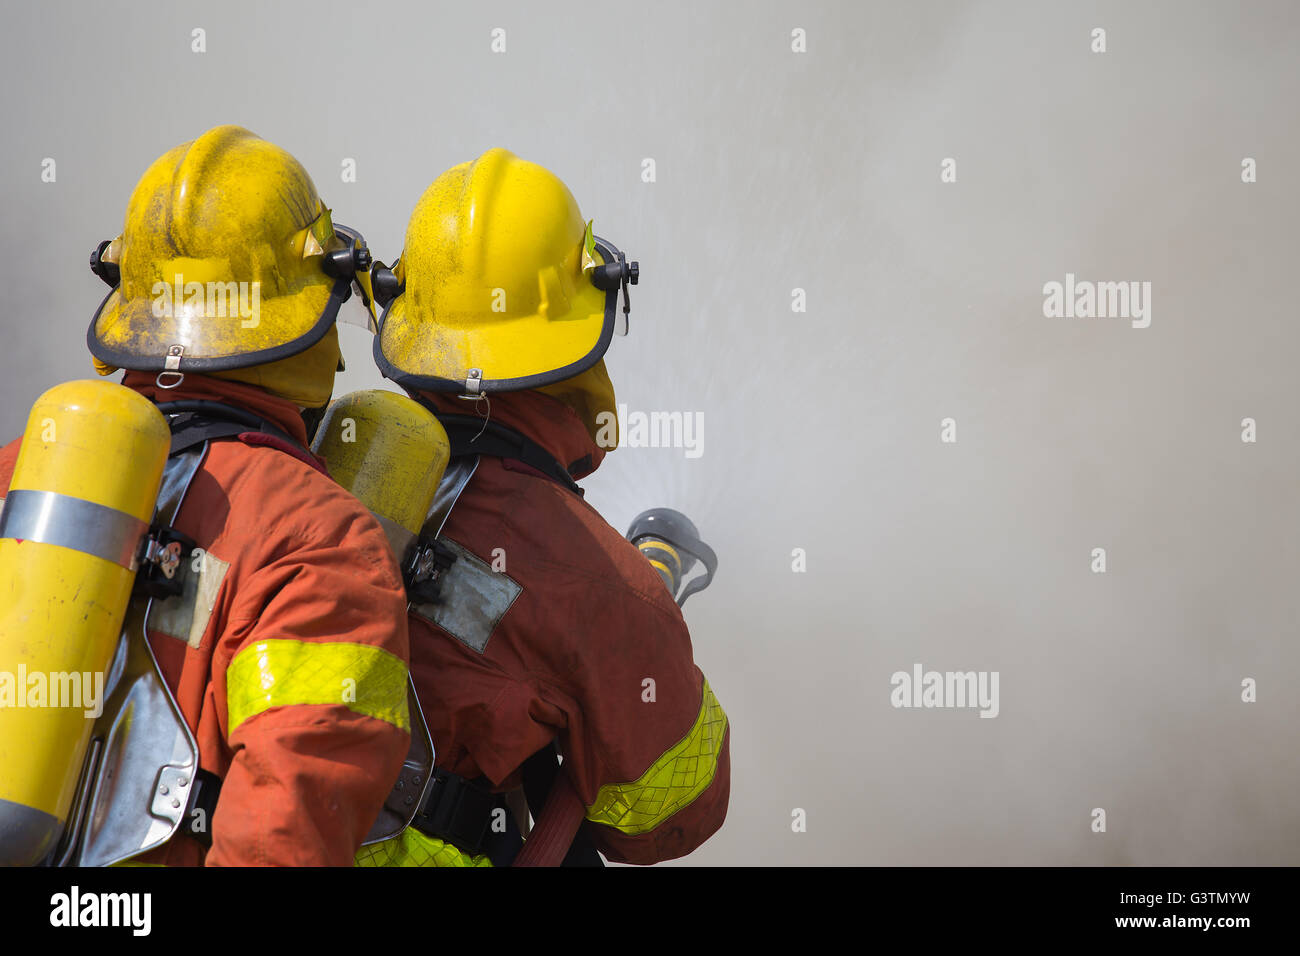 2 firemen spraying water in fire fighting with fire and dark smoke background - Stock Image